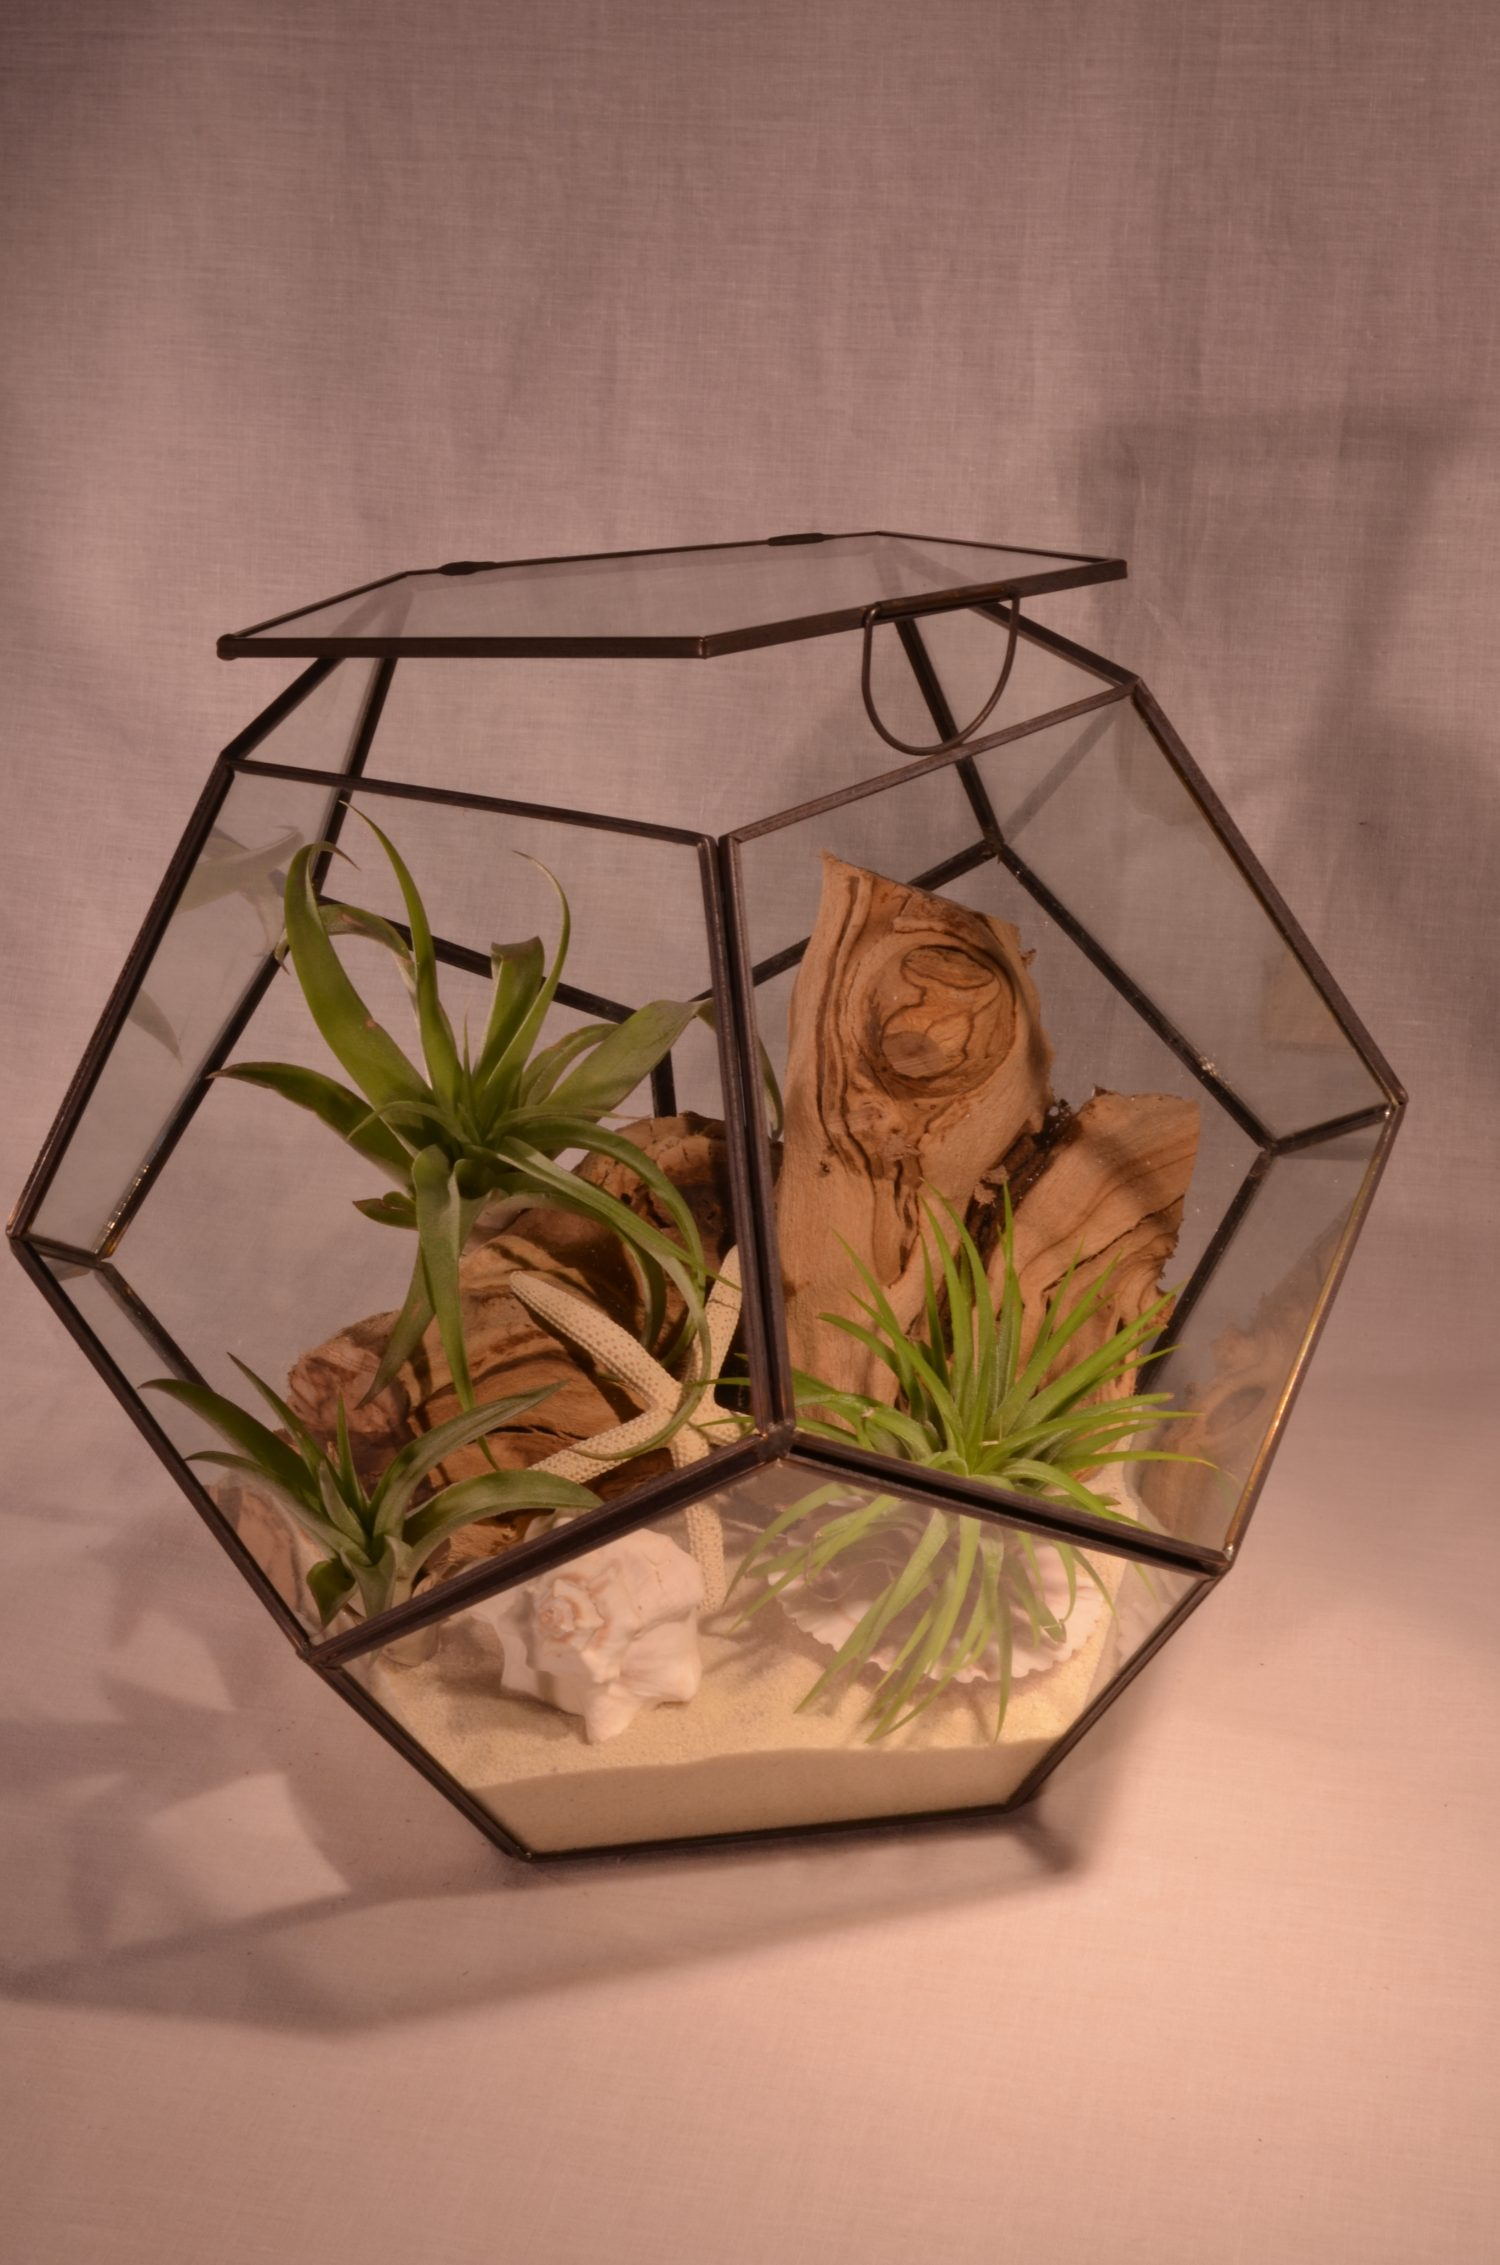 Large Terrarium Kit With 3 Air Plants Inspired Enterprise